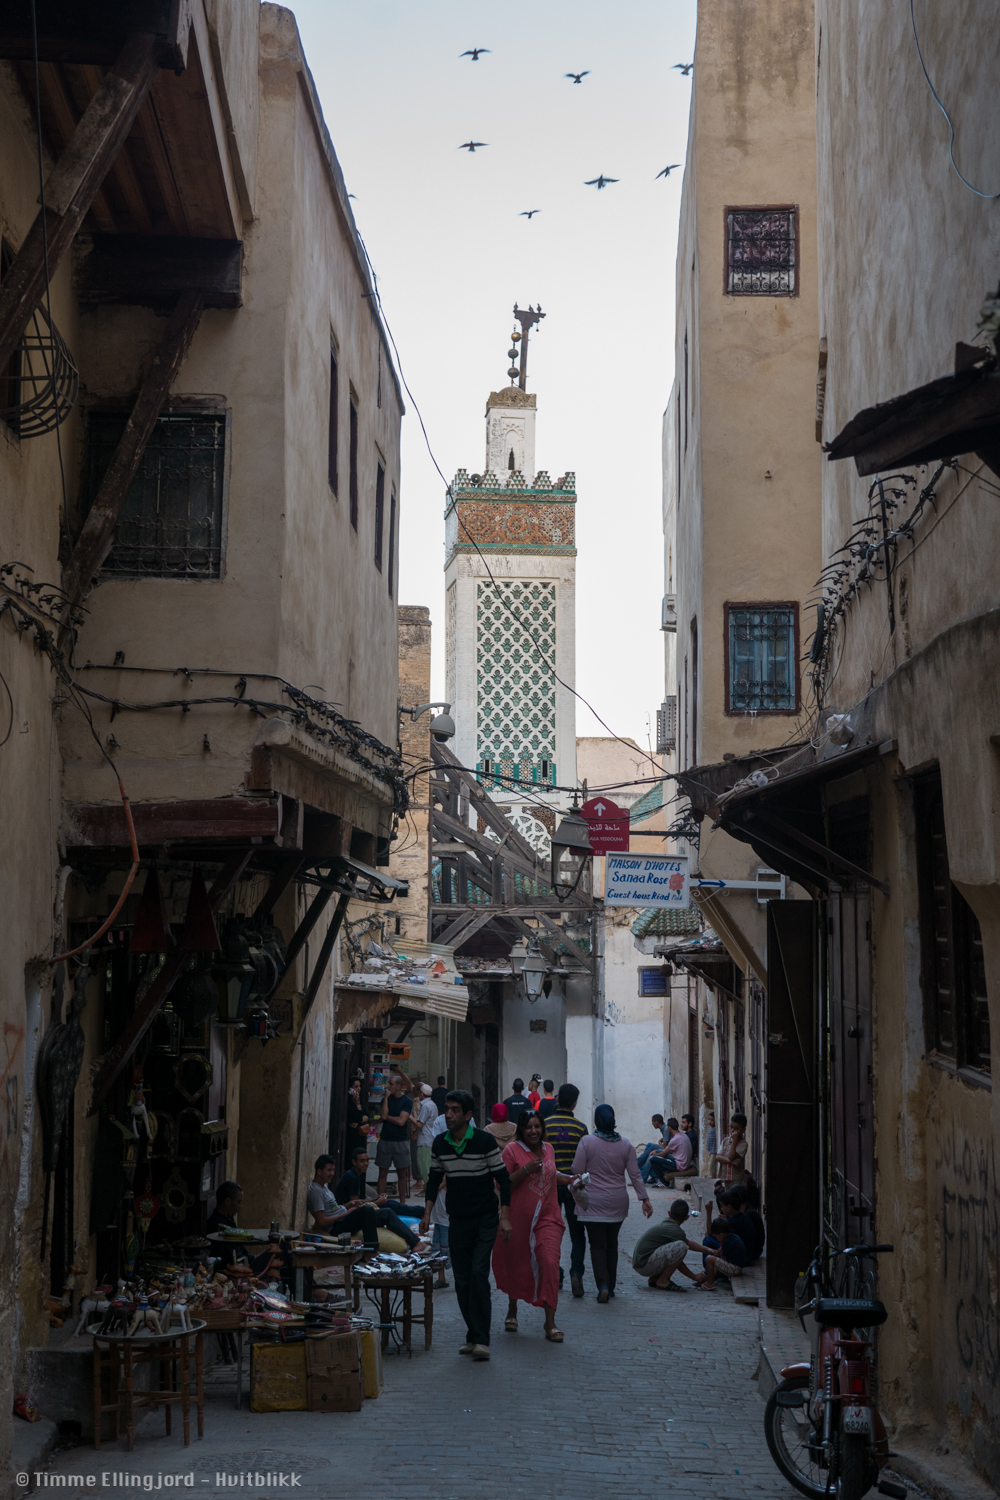 one of the many carless streets in moroccon medinas.